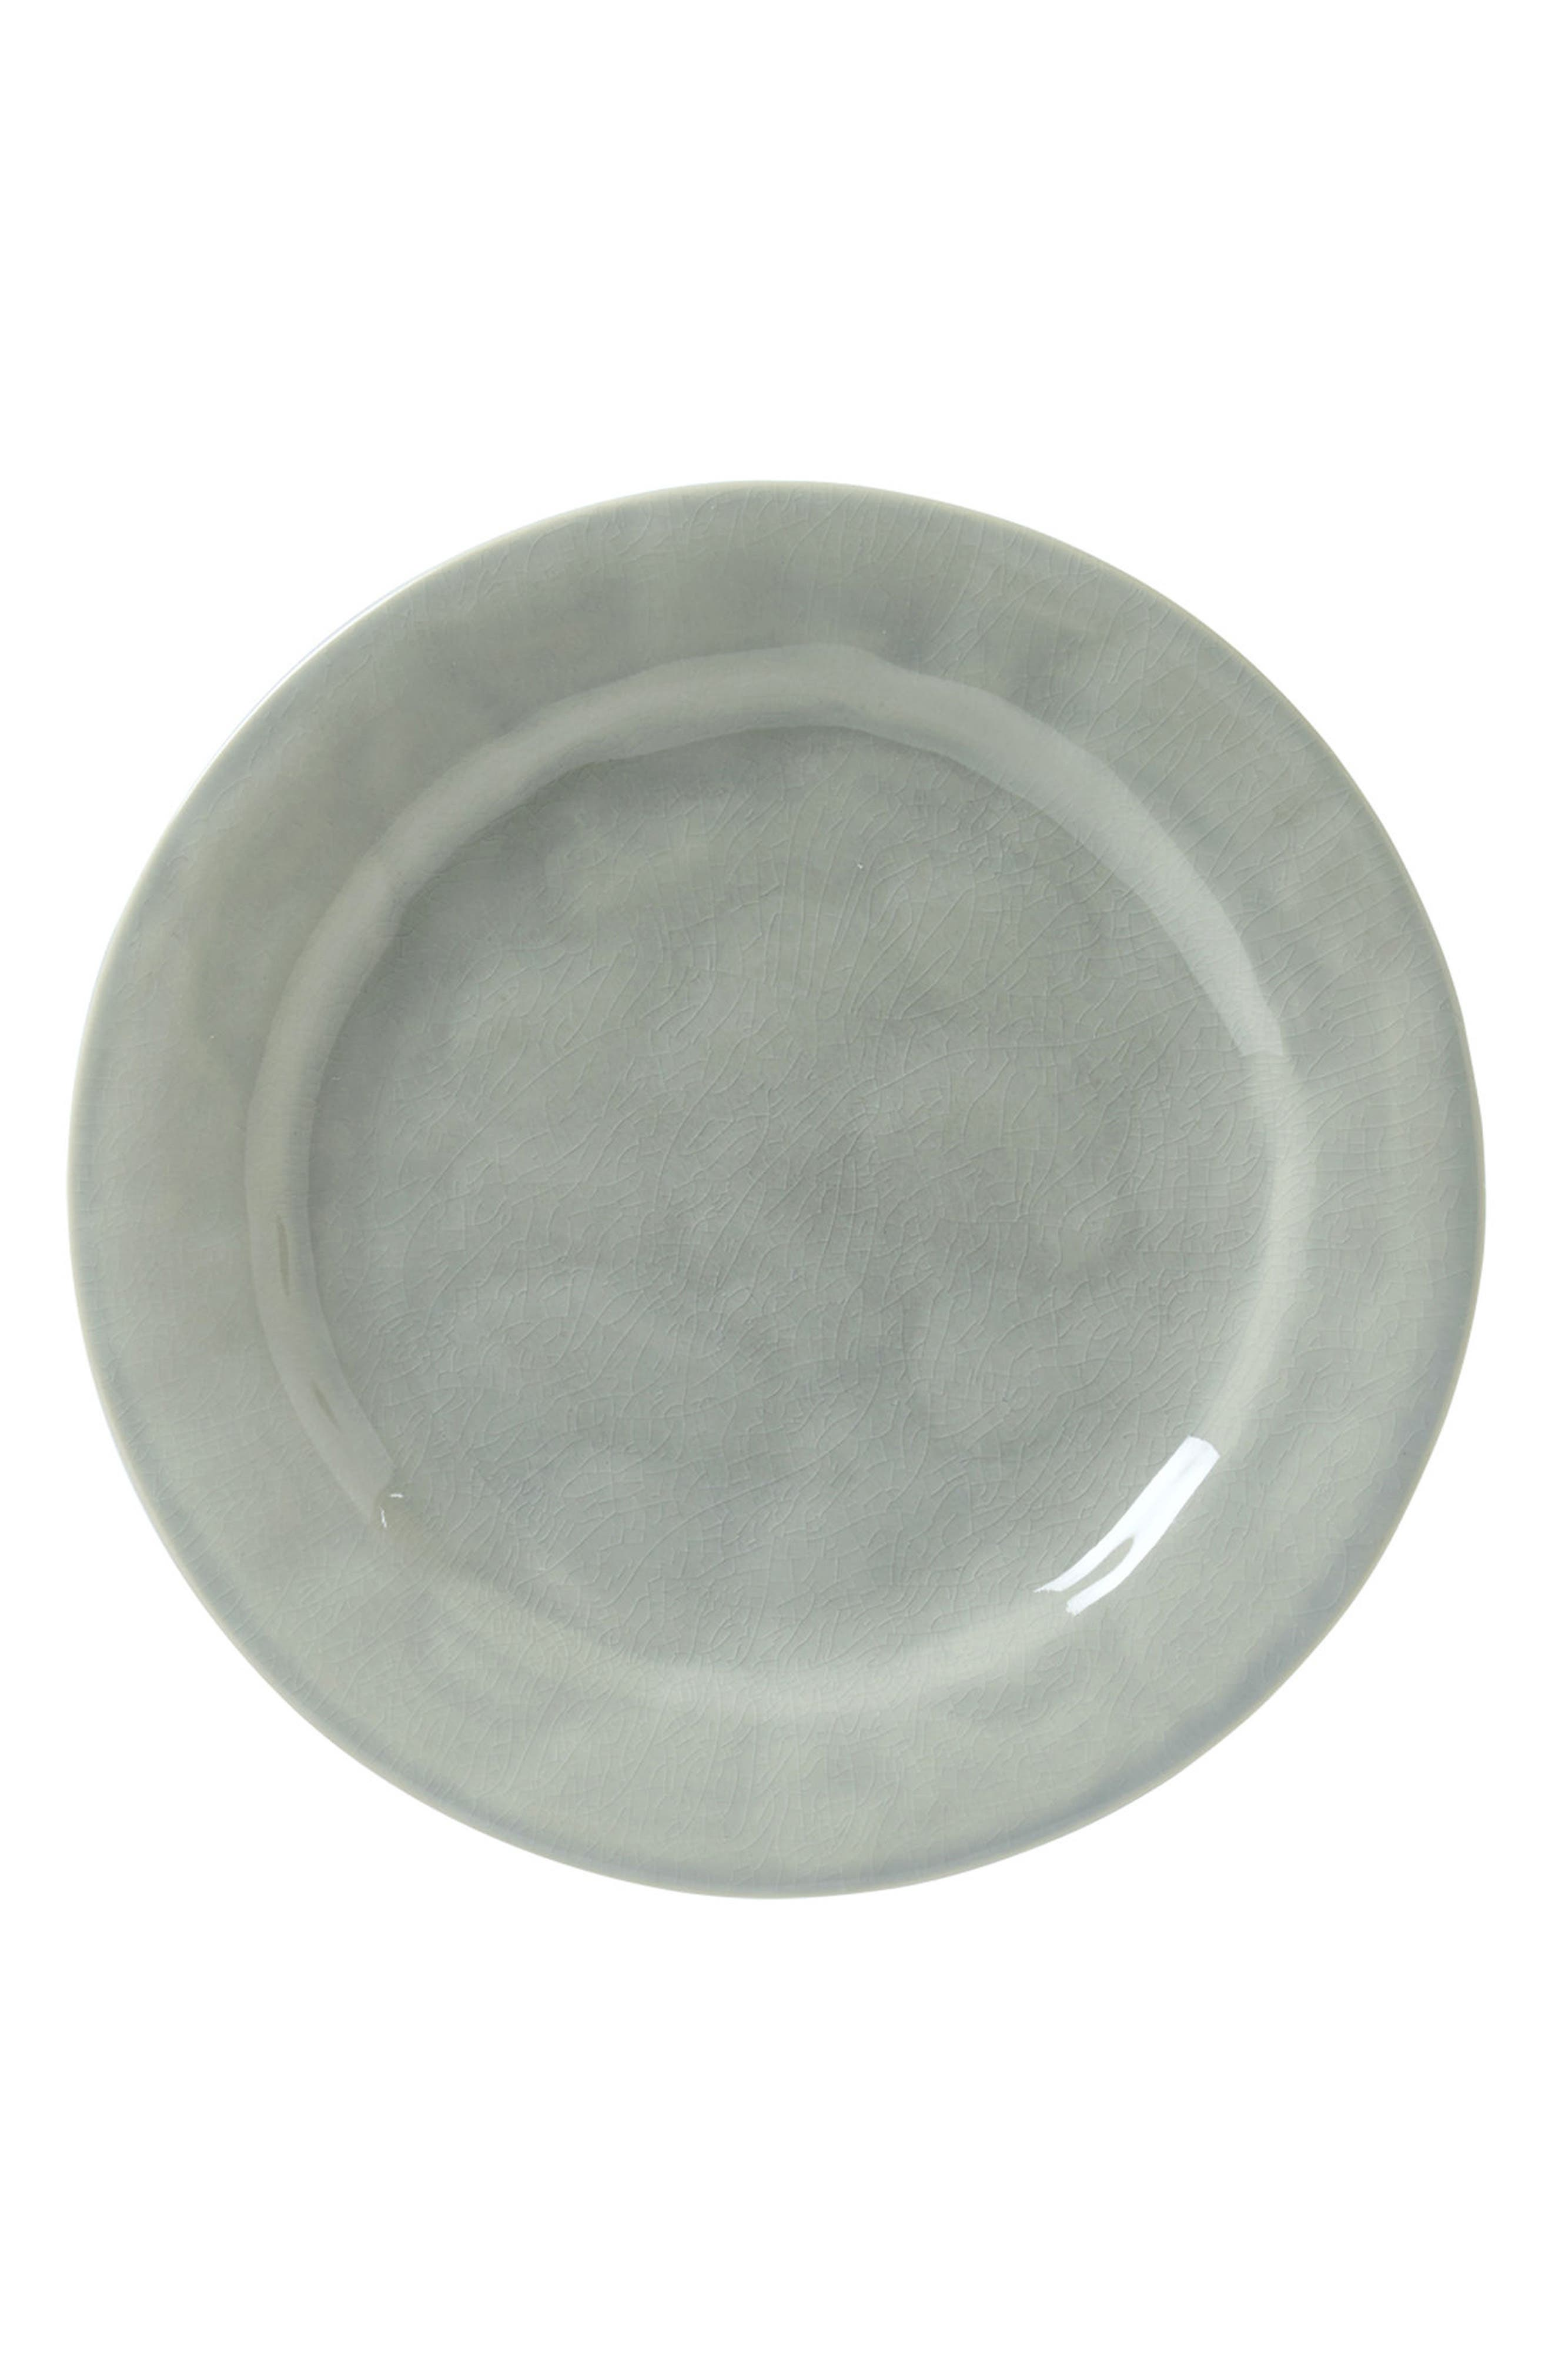 Puro Dinner Plate,                             Main thumbnail 1, color,                             Mist Grey Crackle